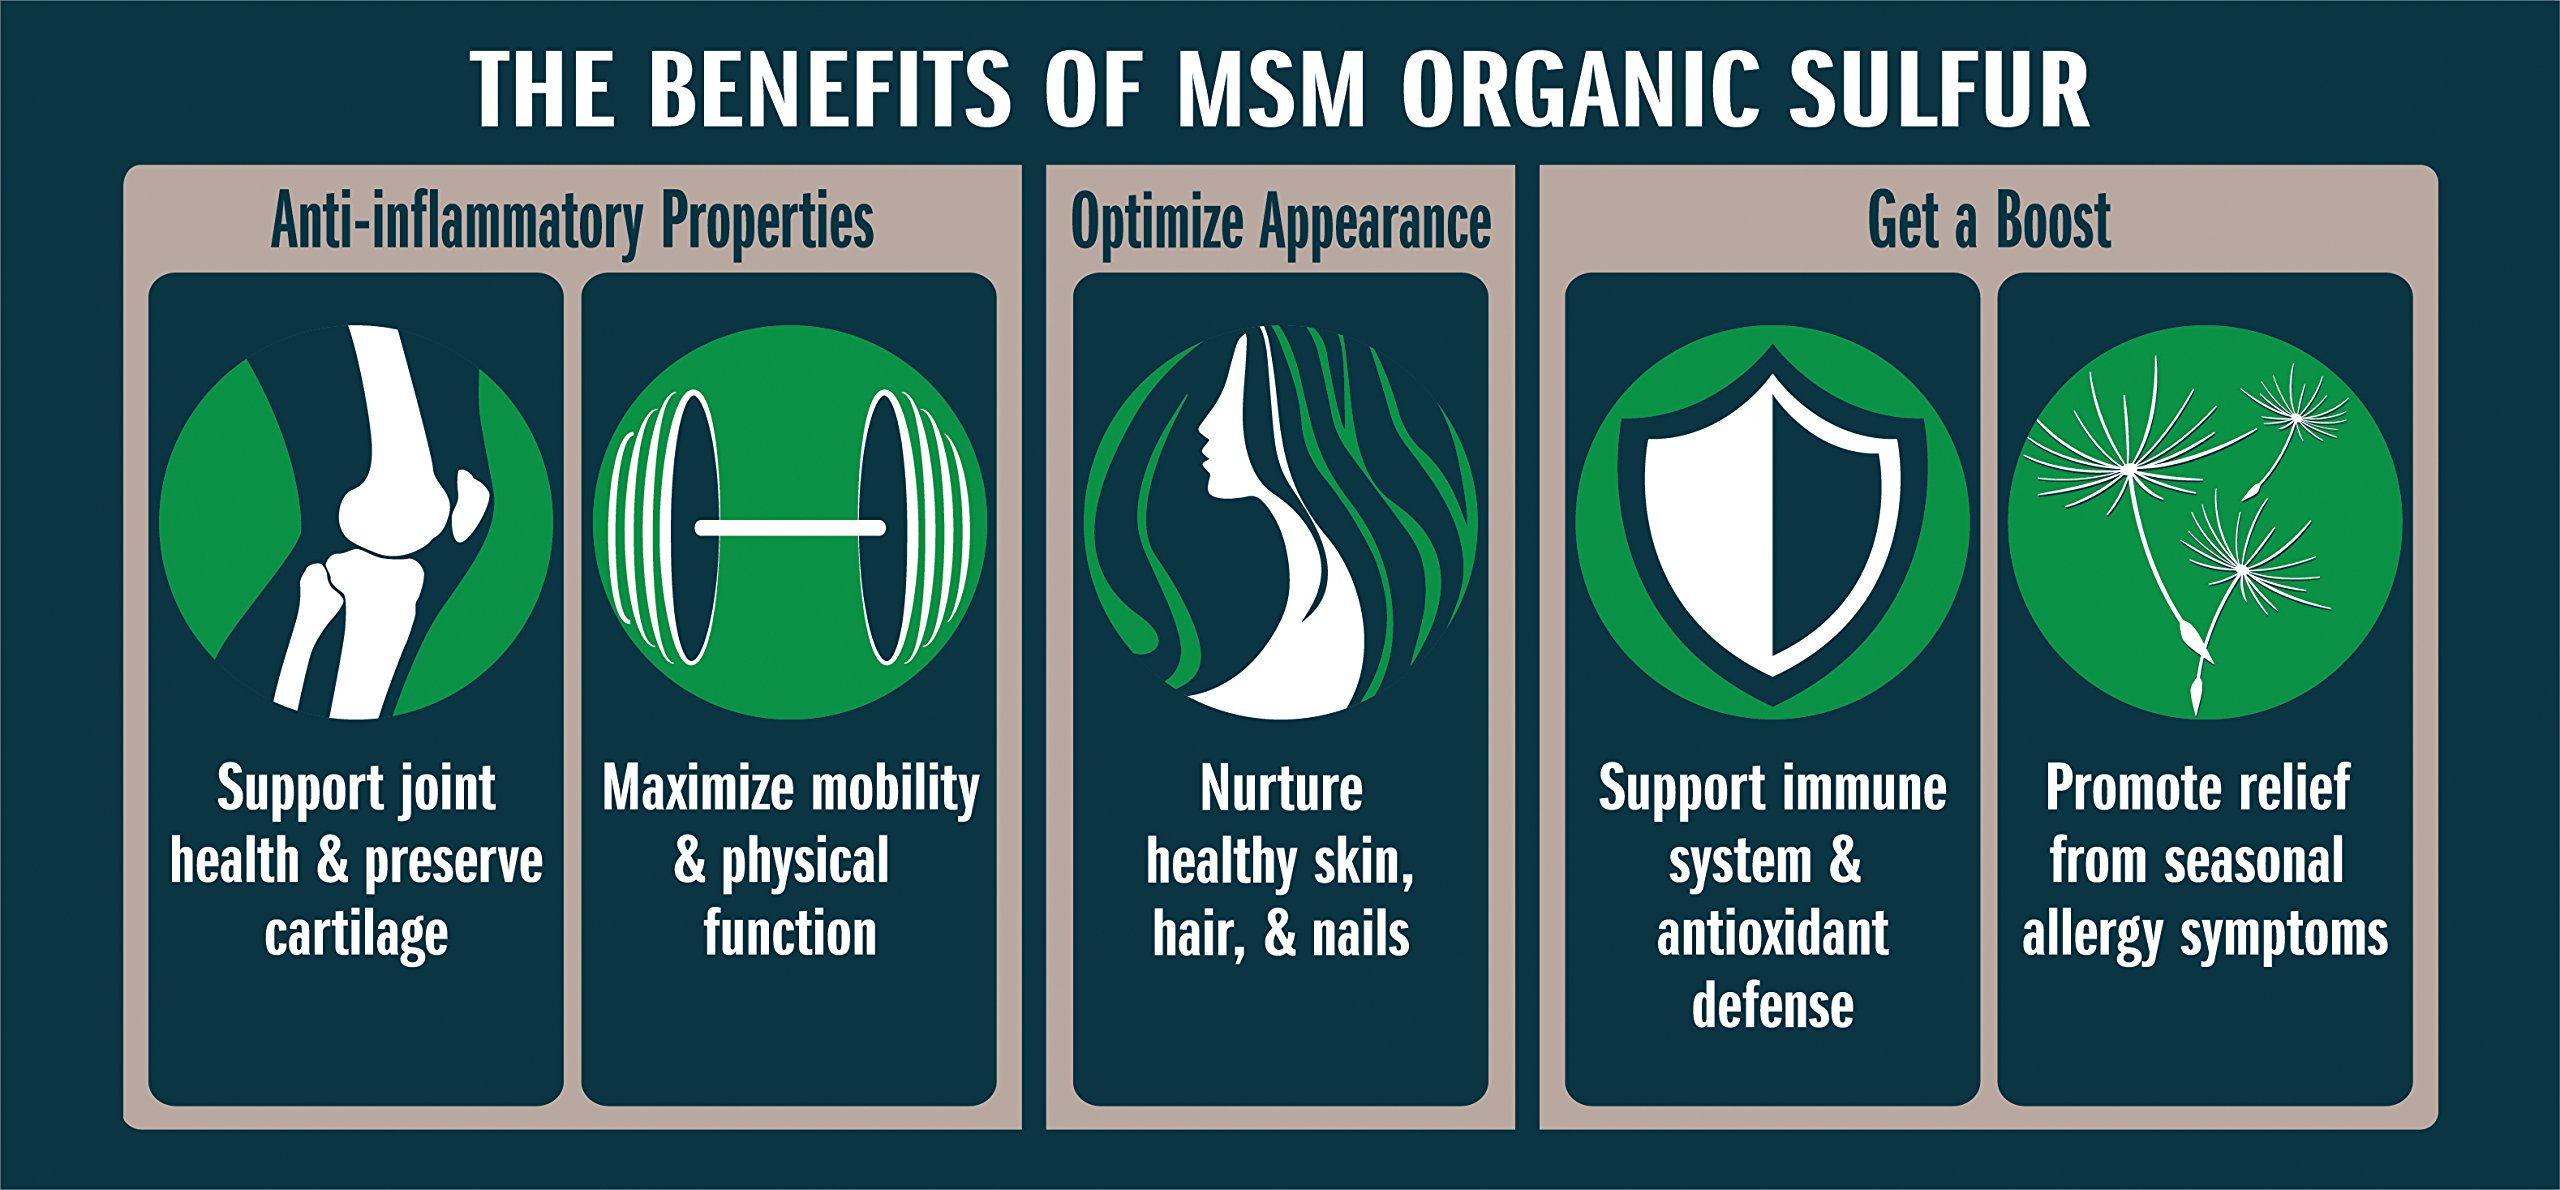 MSM Organic Sulfur Crystals by No Boundaries Health and Wellness – All-Natural, Premium Health Supplement: 99.9% Pure MSM – Benefits: Joint Pain, Allergies, Skin, Hair & Nail Health – No Fillers by No Boundaries Health and Wellness MSM Organic Sulfur (Image #3)